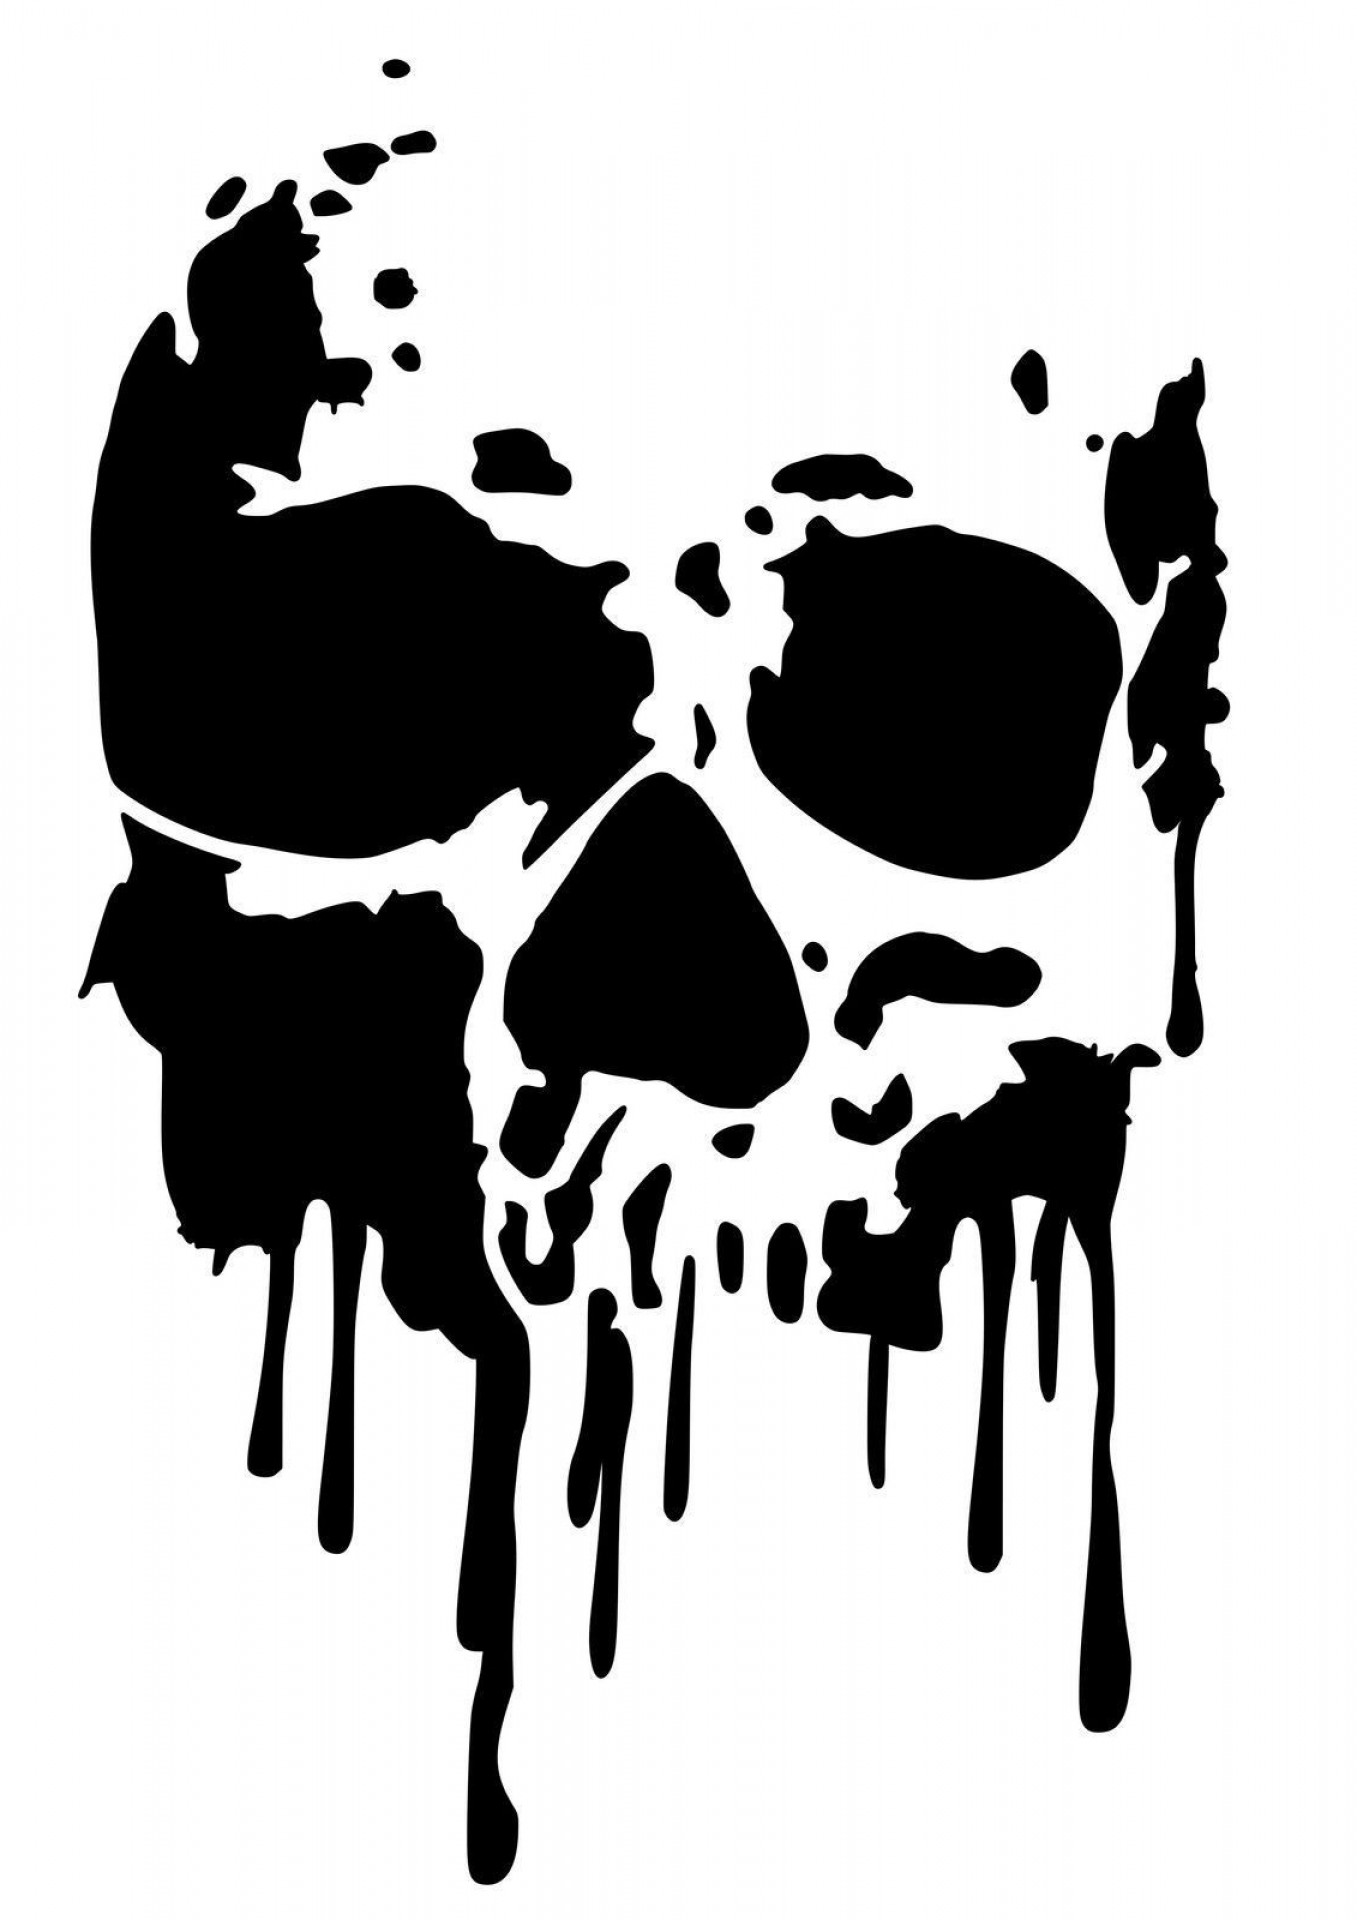 Airbrush Stencil Art Vector: Free Clip Art Uk High Detail Dripping Skull Airbrush Stencil Postage For Of